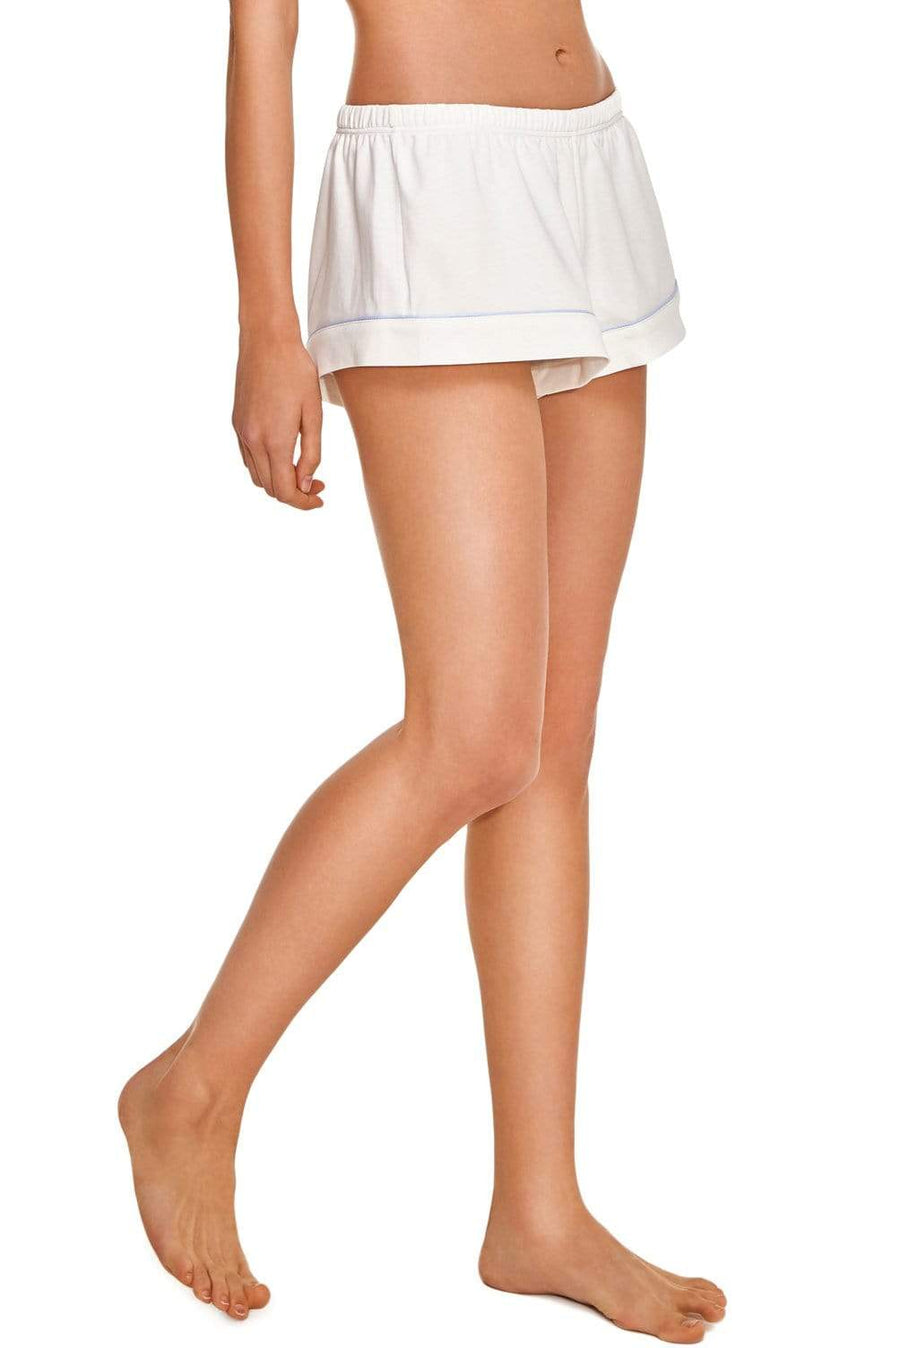 SHORT Slow Nature® Essentials Sleep & Loungewear. Coton organique. mode durable mode éthique